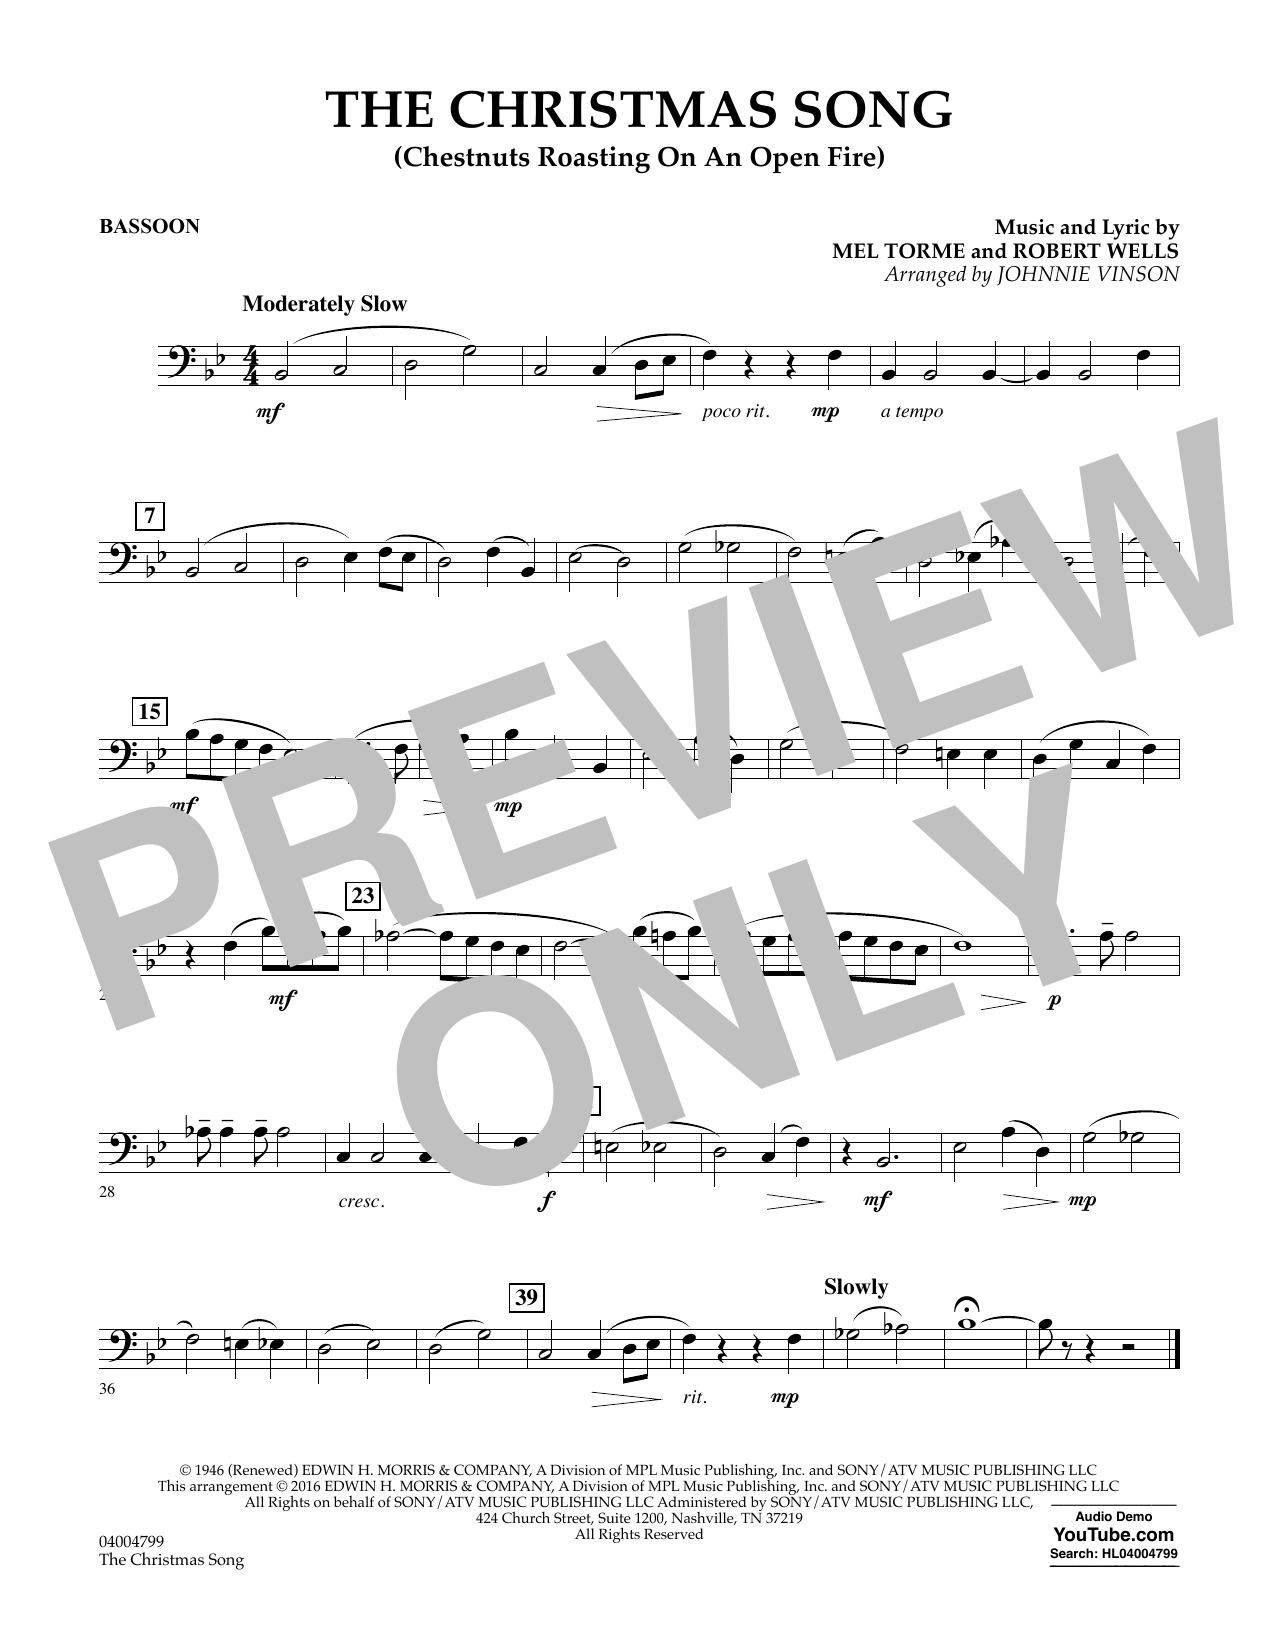 The Christmas Song (Chestnuts Roasting on an Open Fire) - Bassoon (Concert Band)